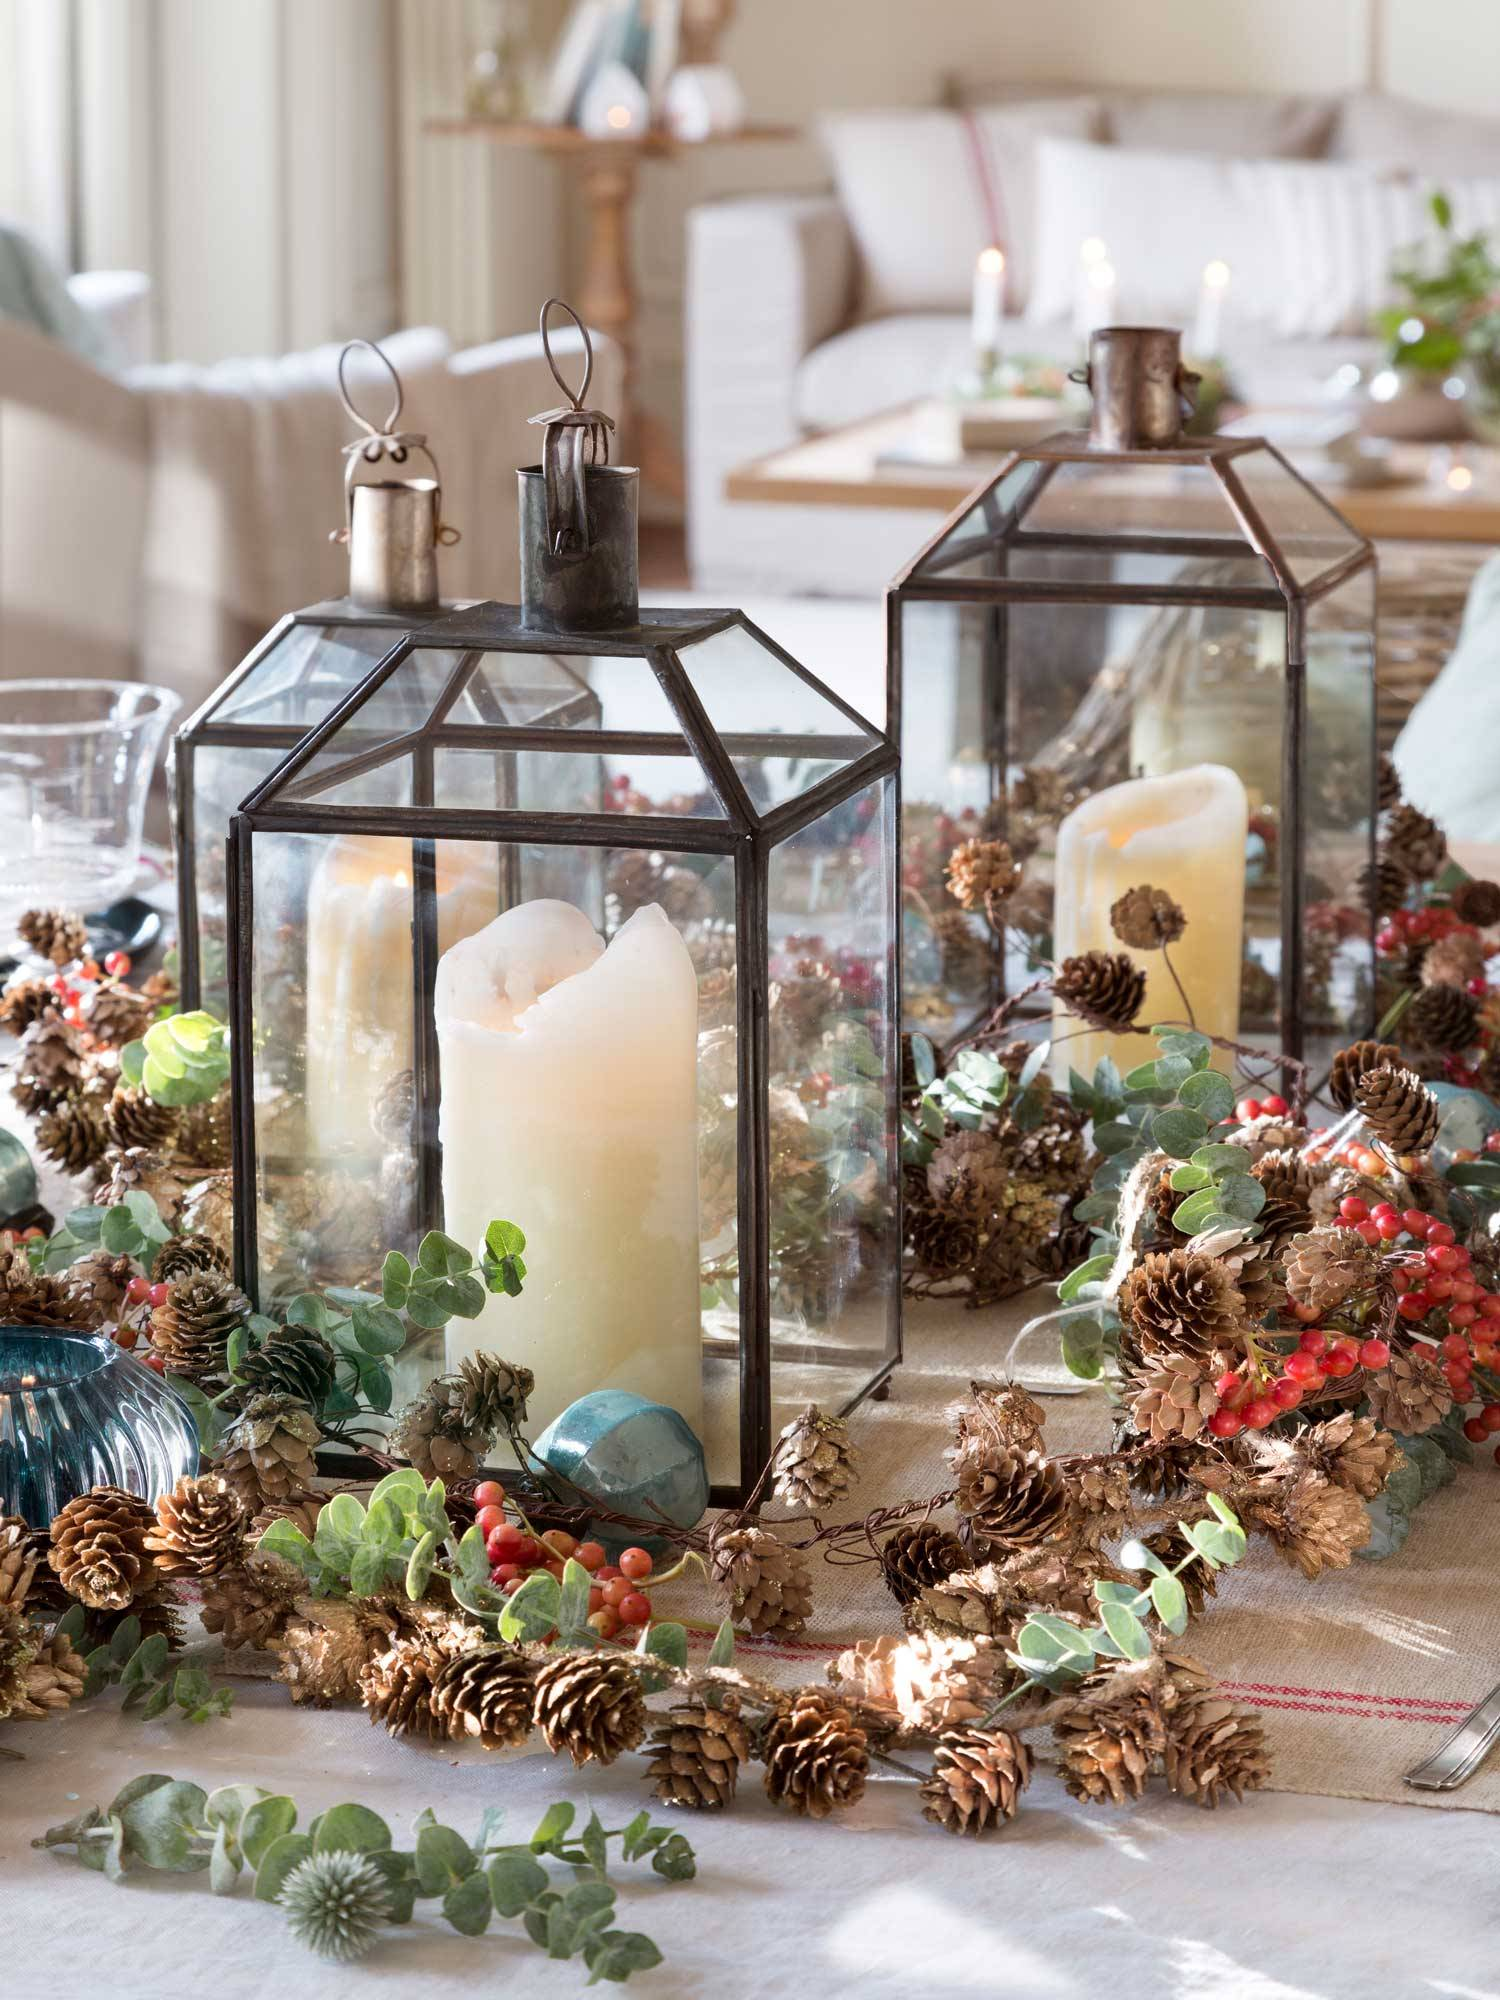 CANDLES, LANTERNS, AND LOTS OF PINEAPPLES!